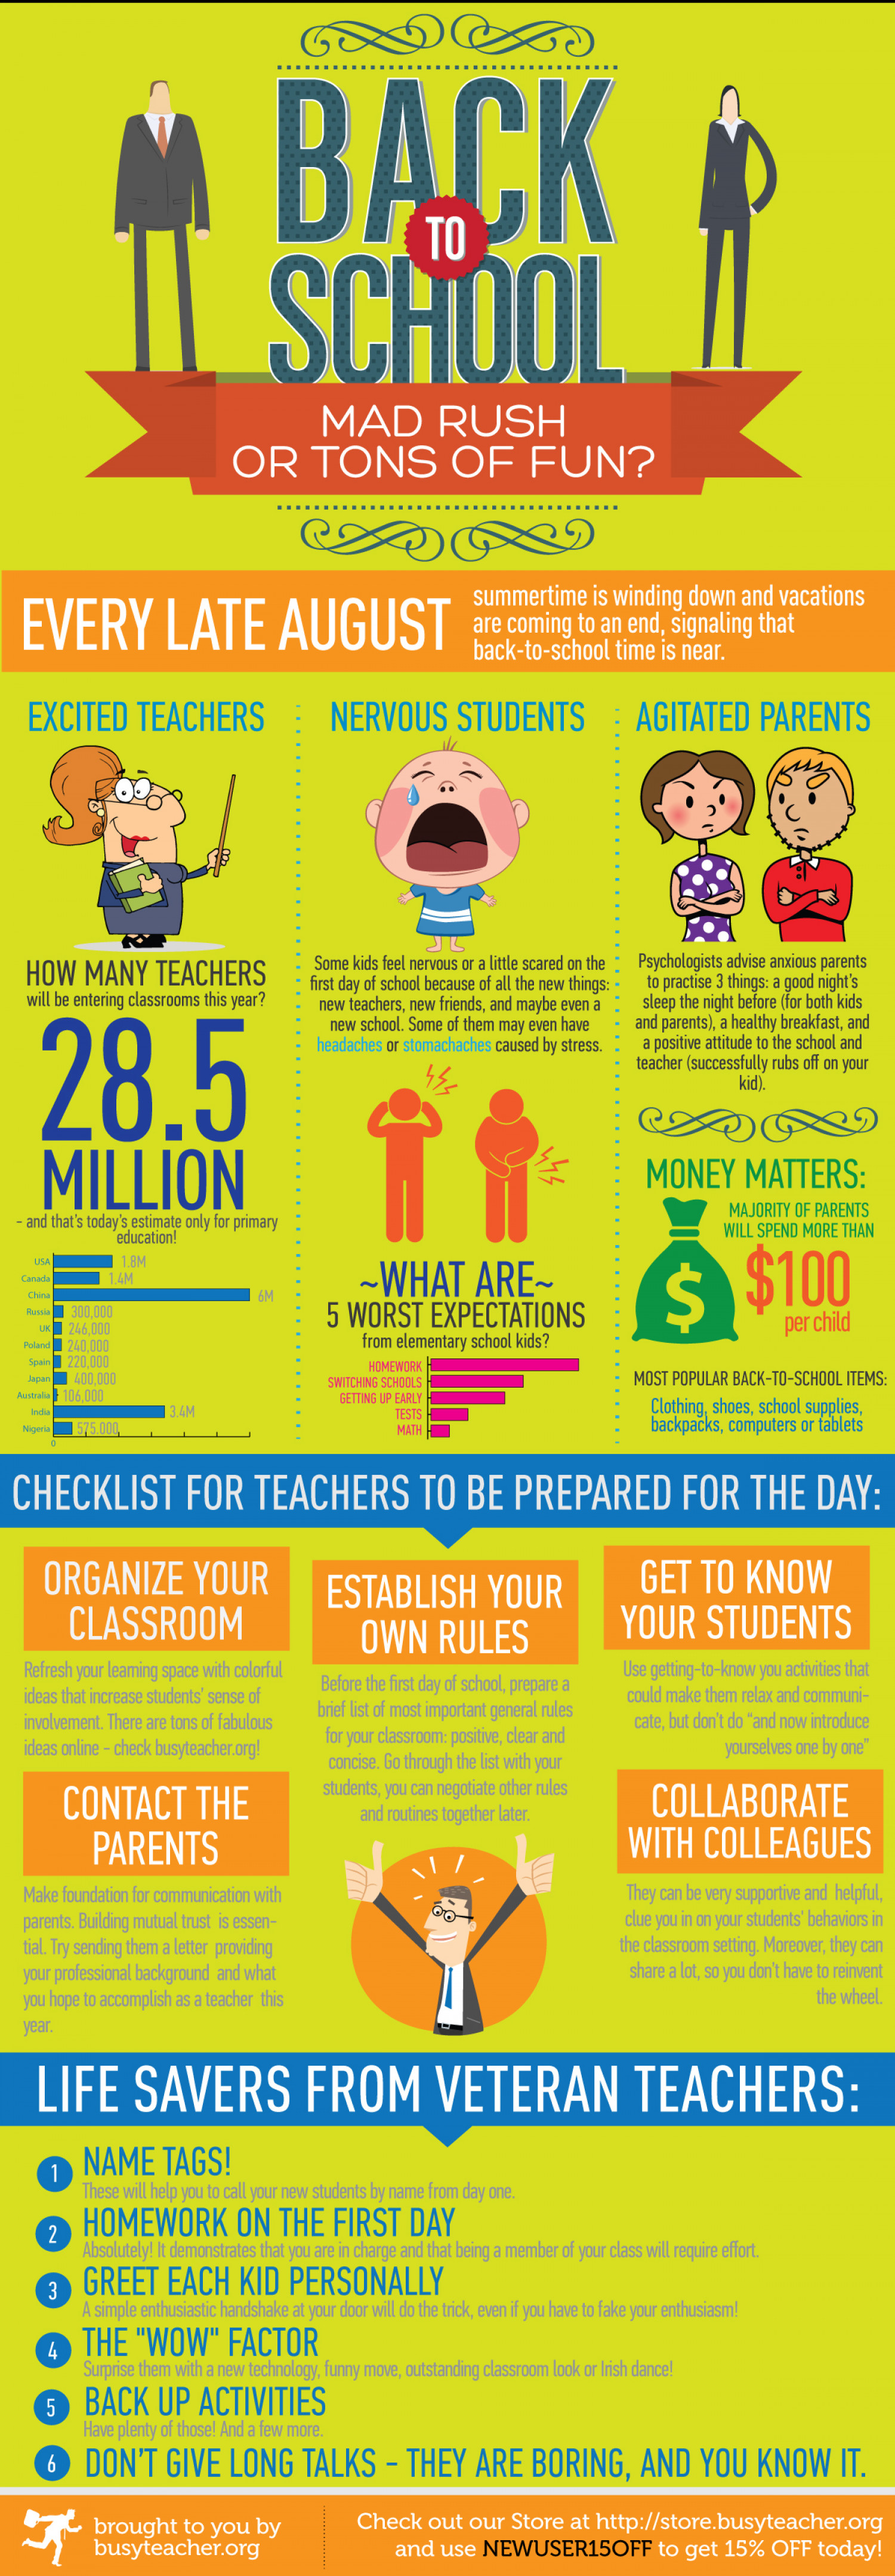 Back To School: Mad Rush Or Tons Of Fun? Infographic